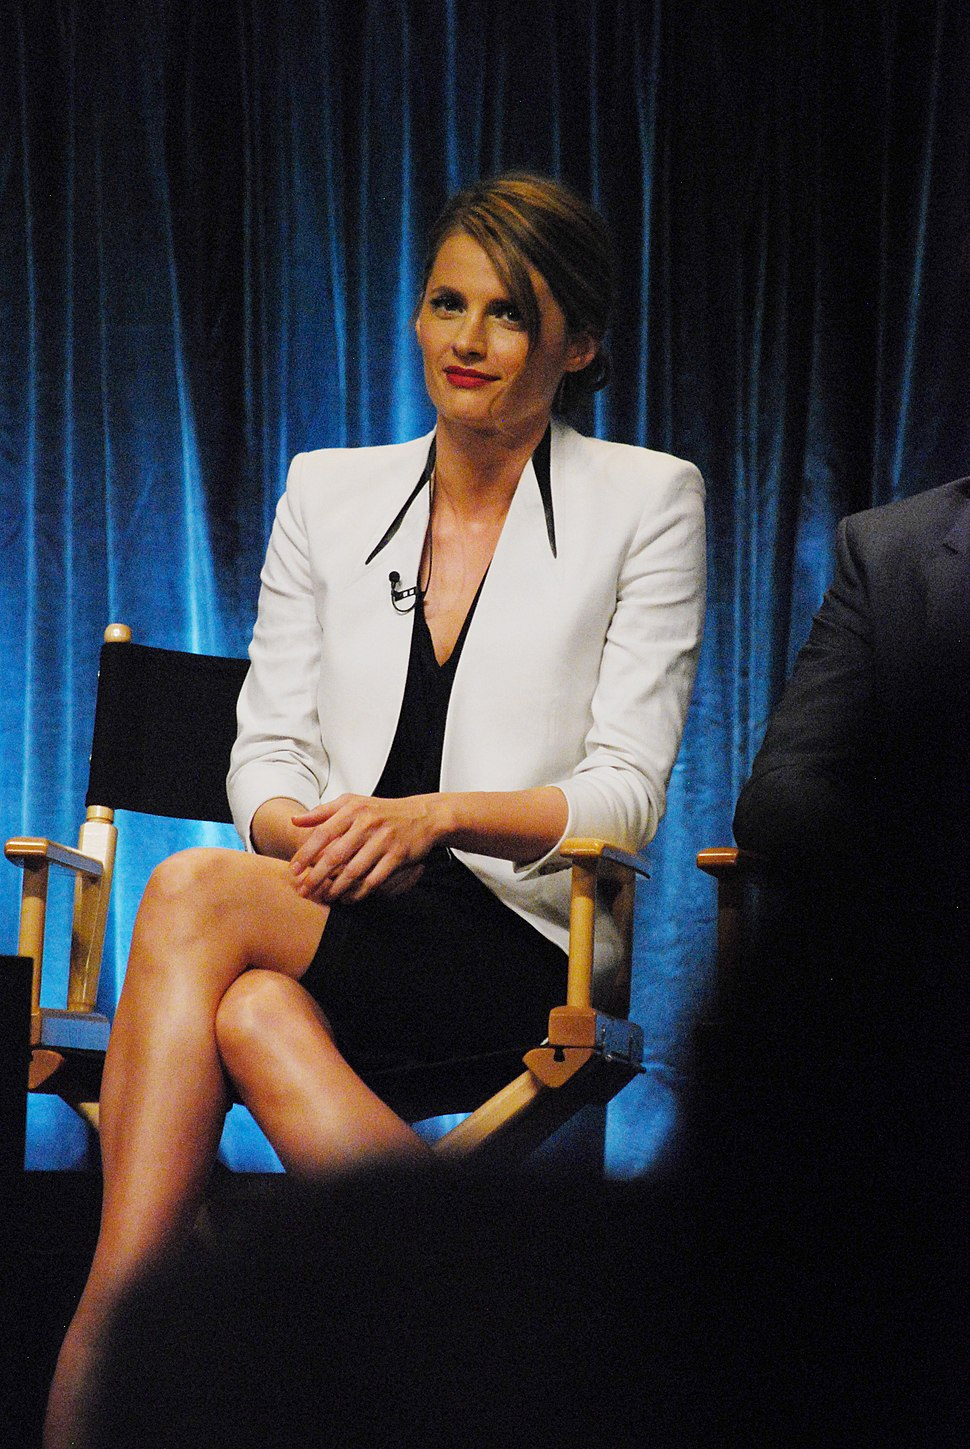 Stana Katic at Paleyfest 2012